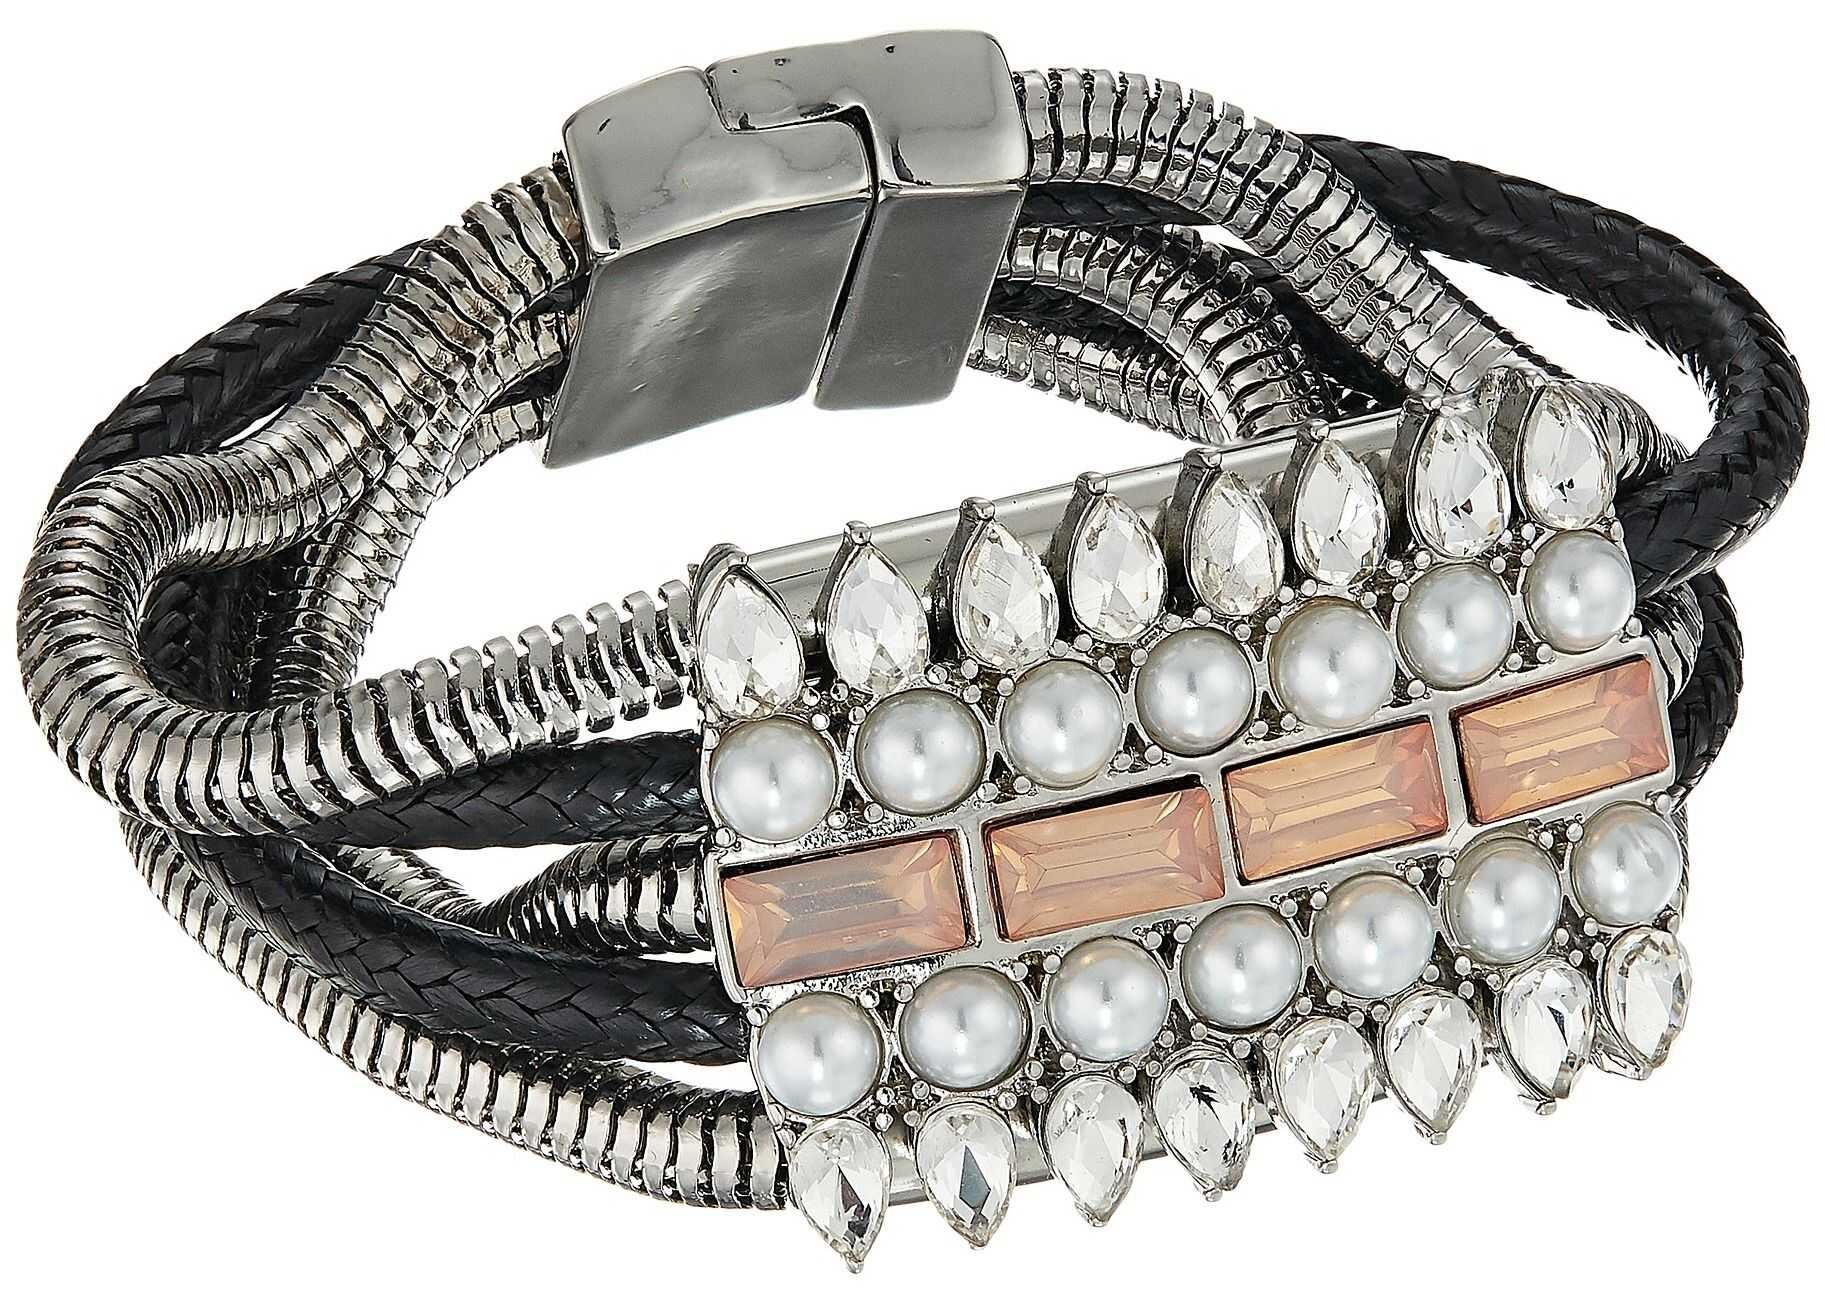 GUESS Wide Multi Snake Chain with Stone Accent & Magnetic Closure Brac Silver/Crystal/Black